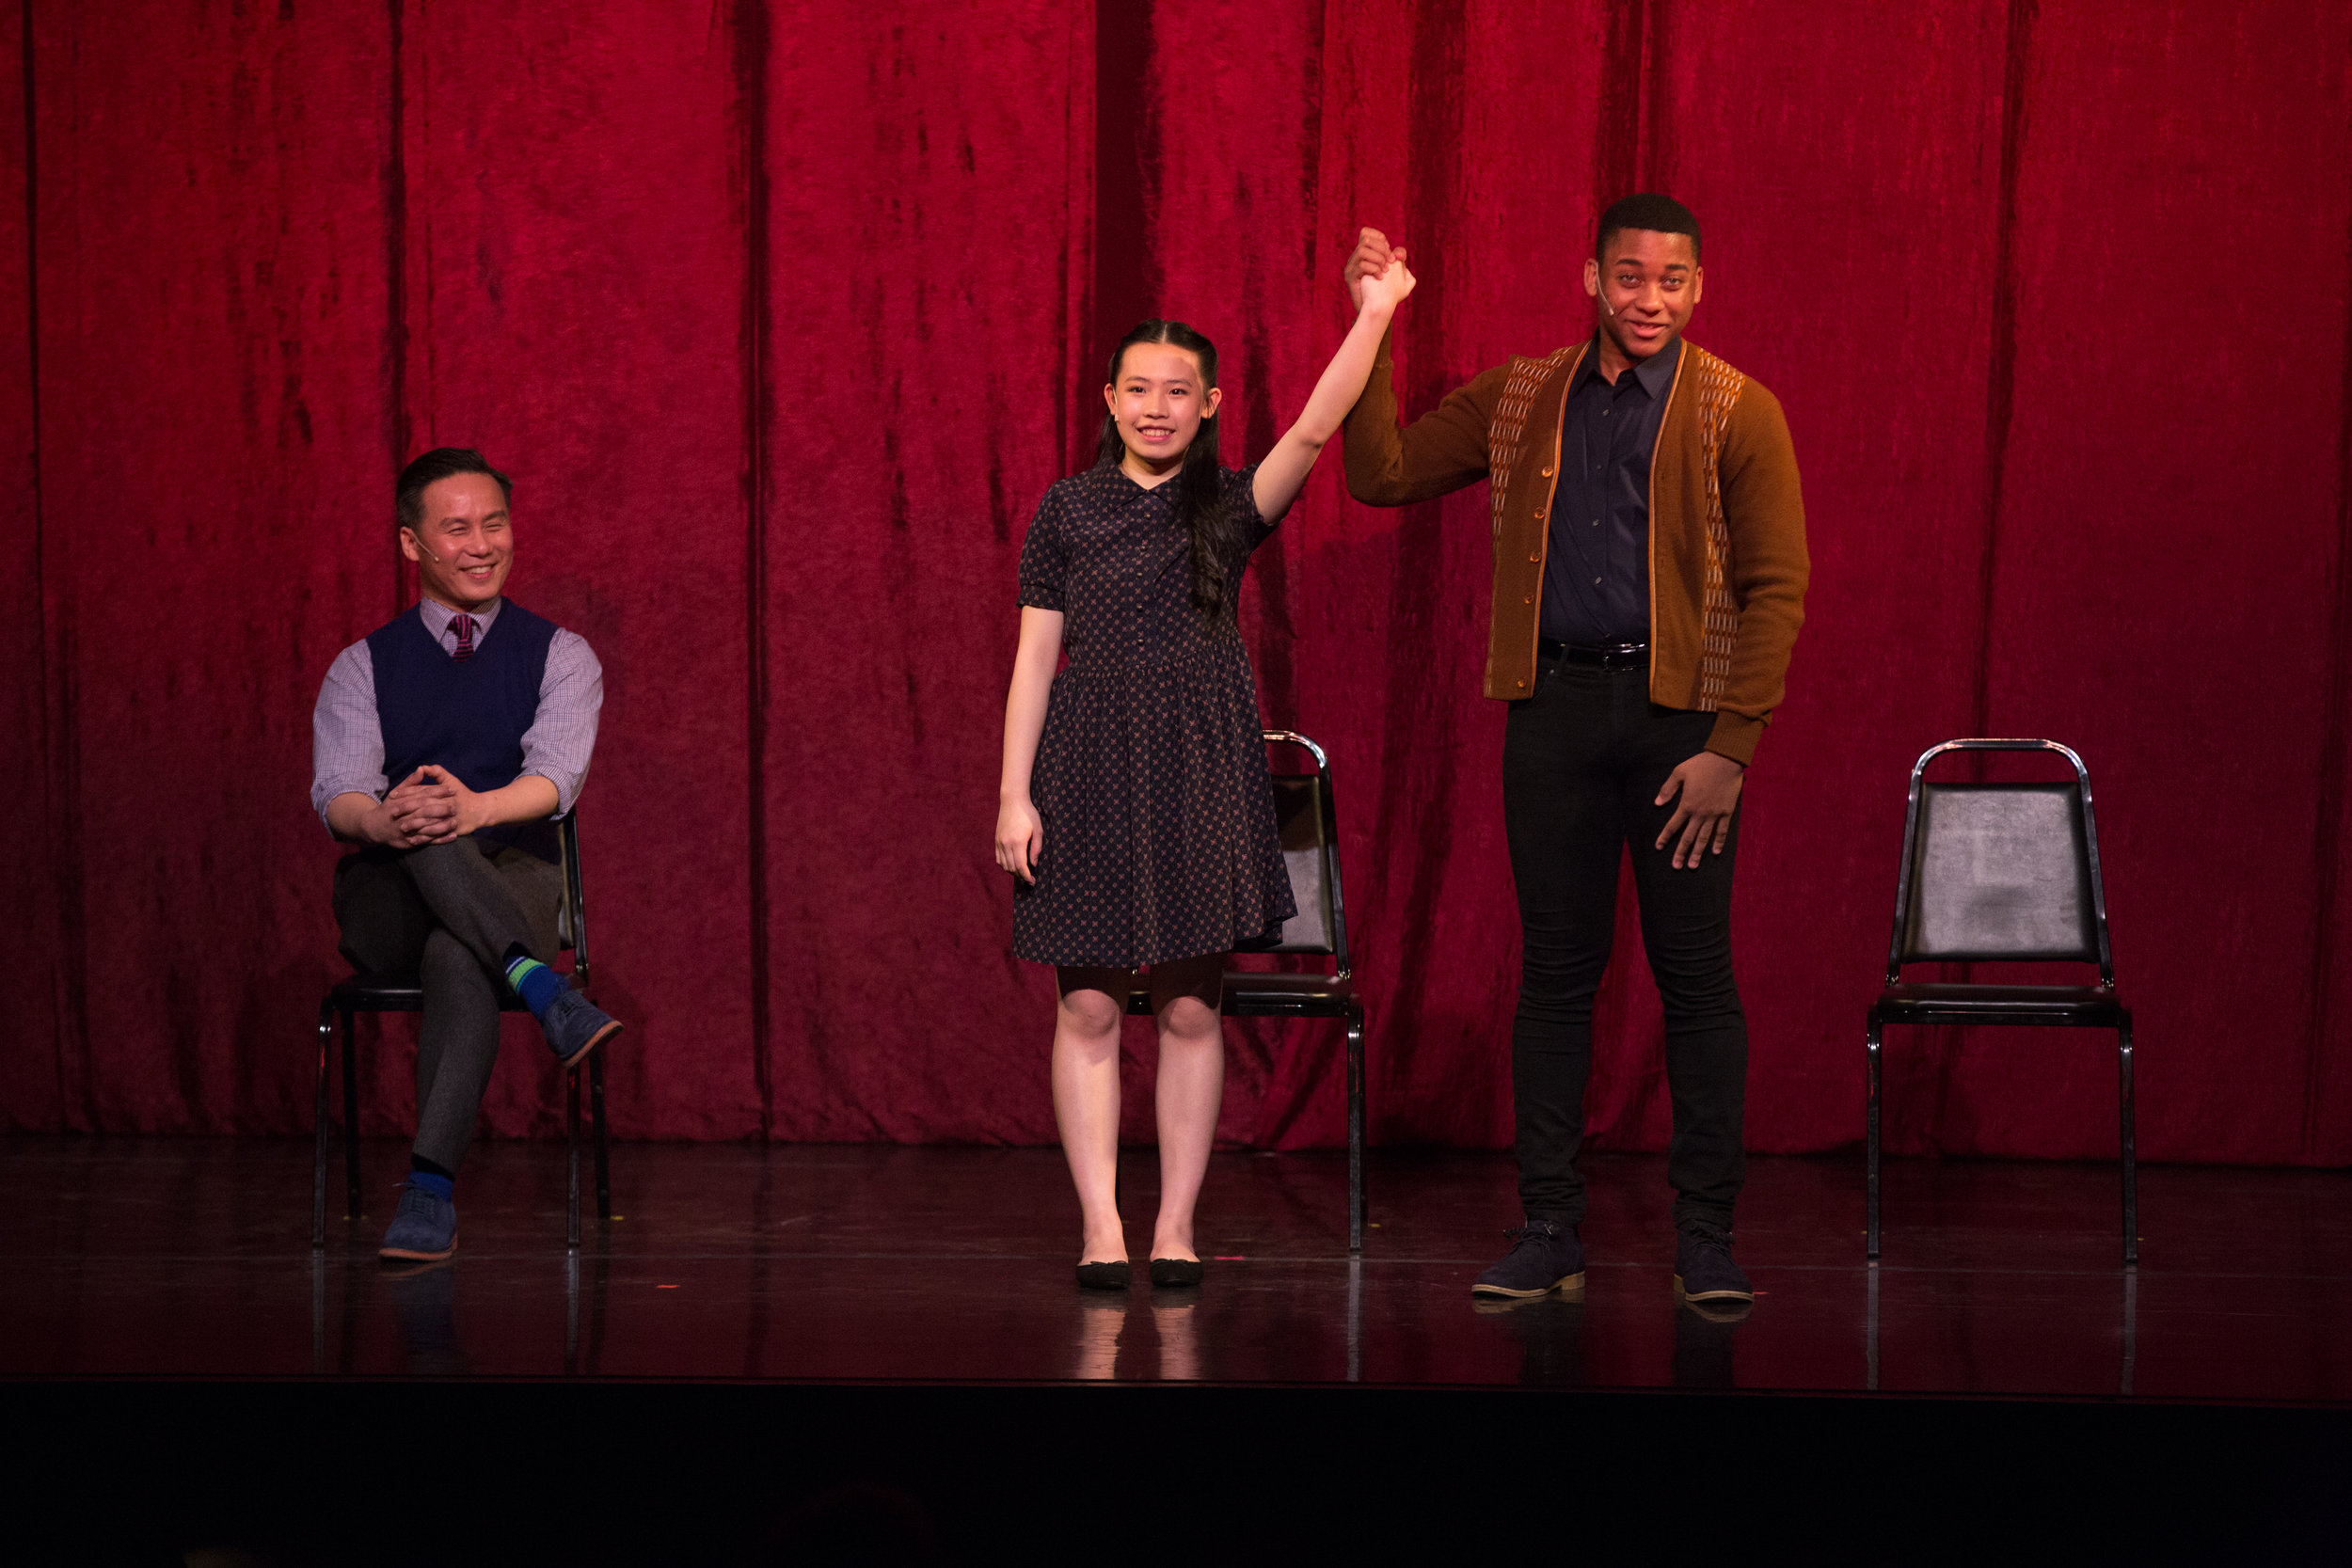 170423_rtk_1579 BD Wong, Lucy Lin and Malcolm Callender.jpg